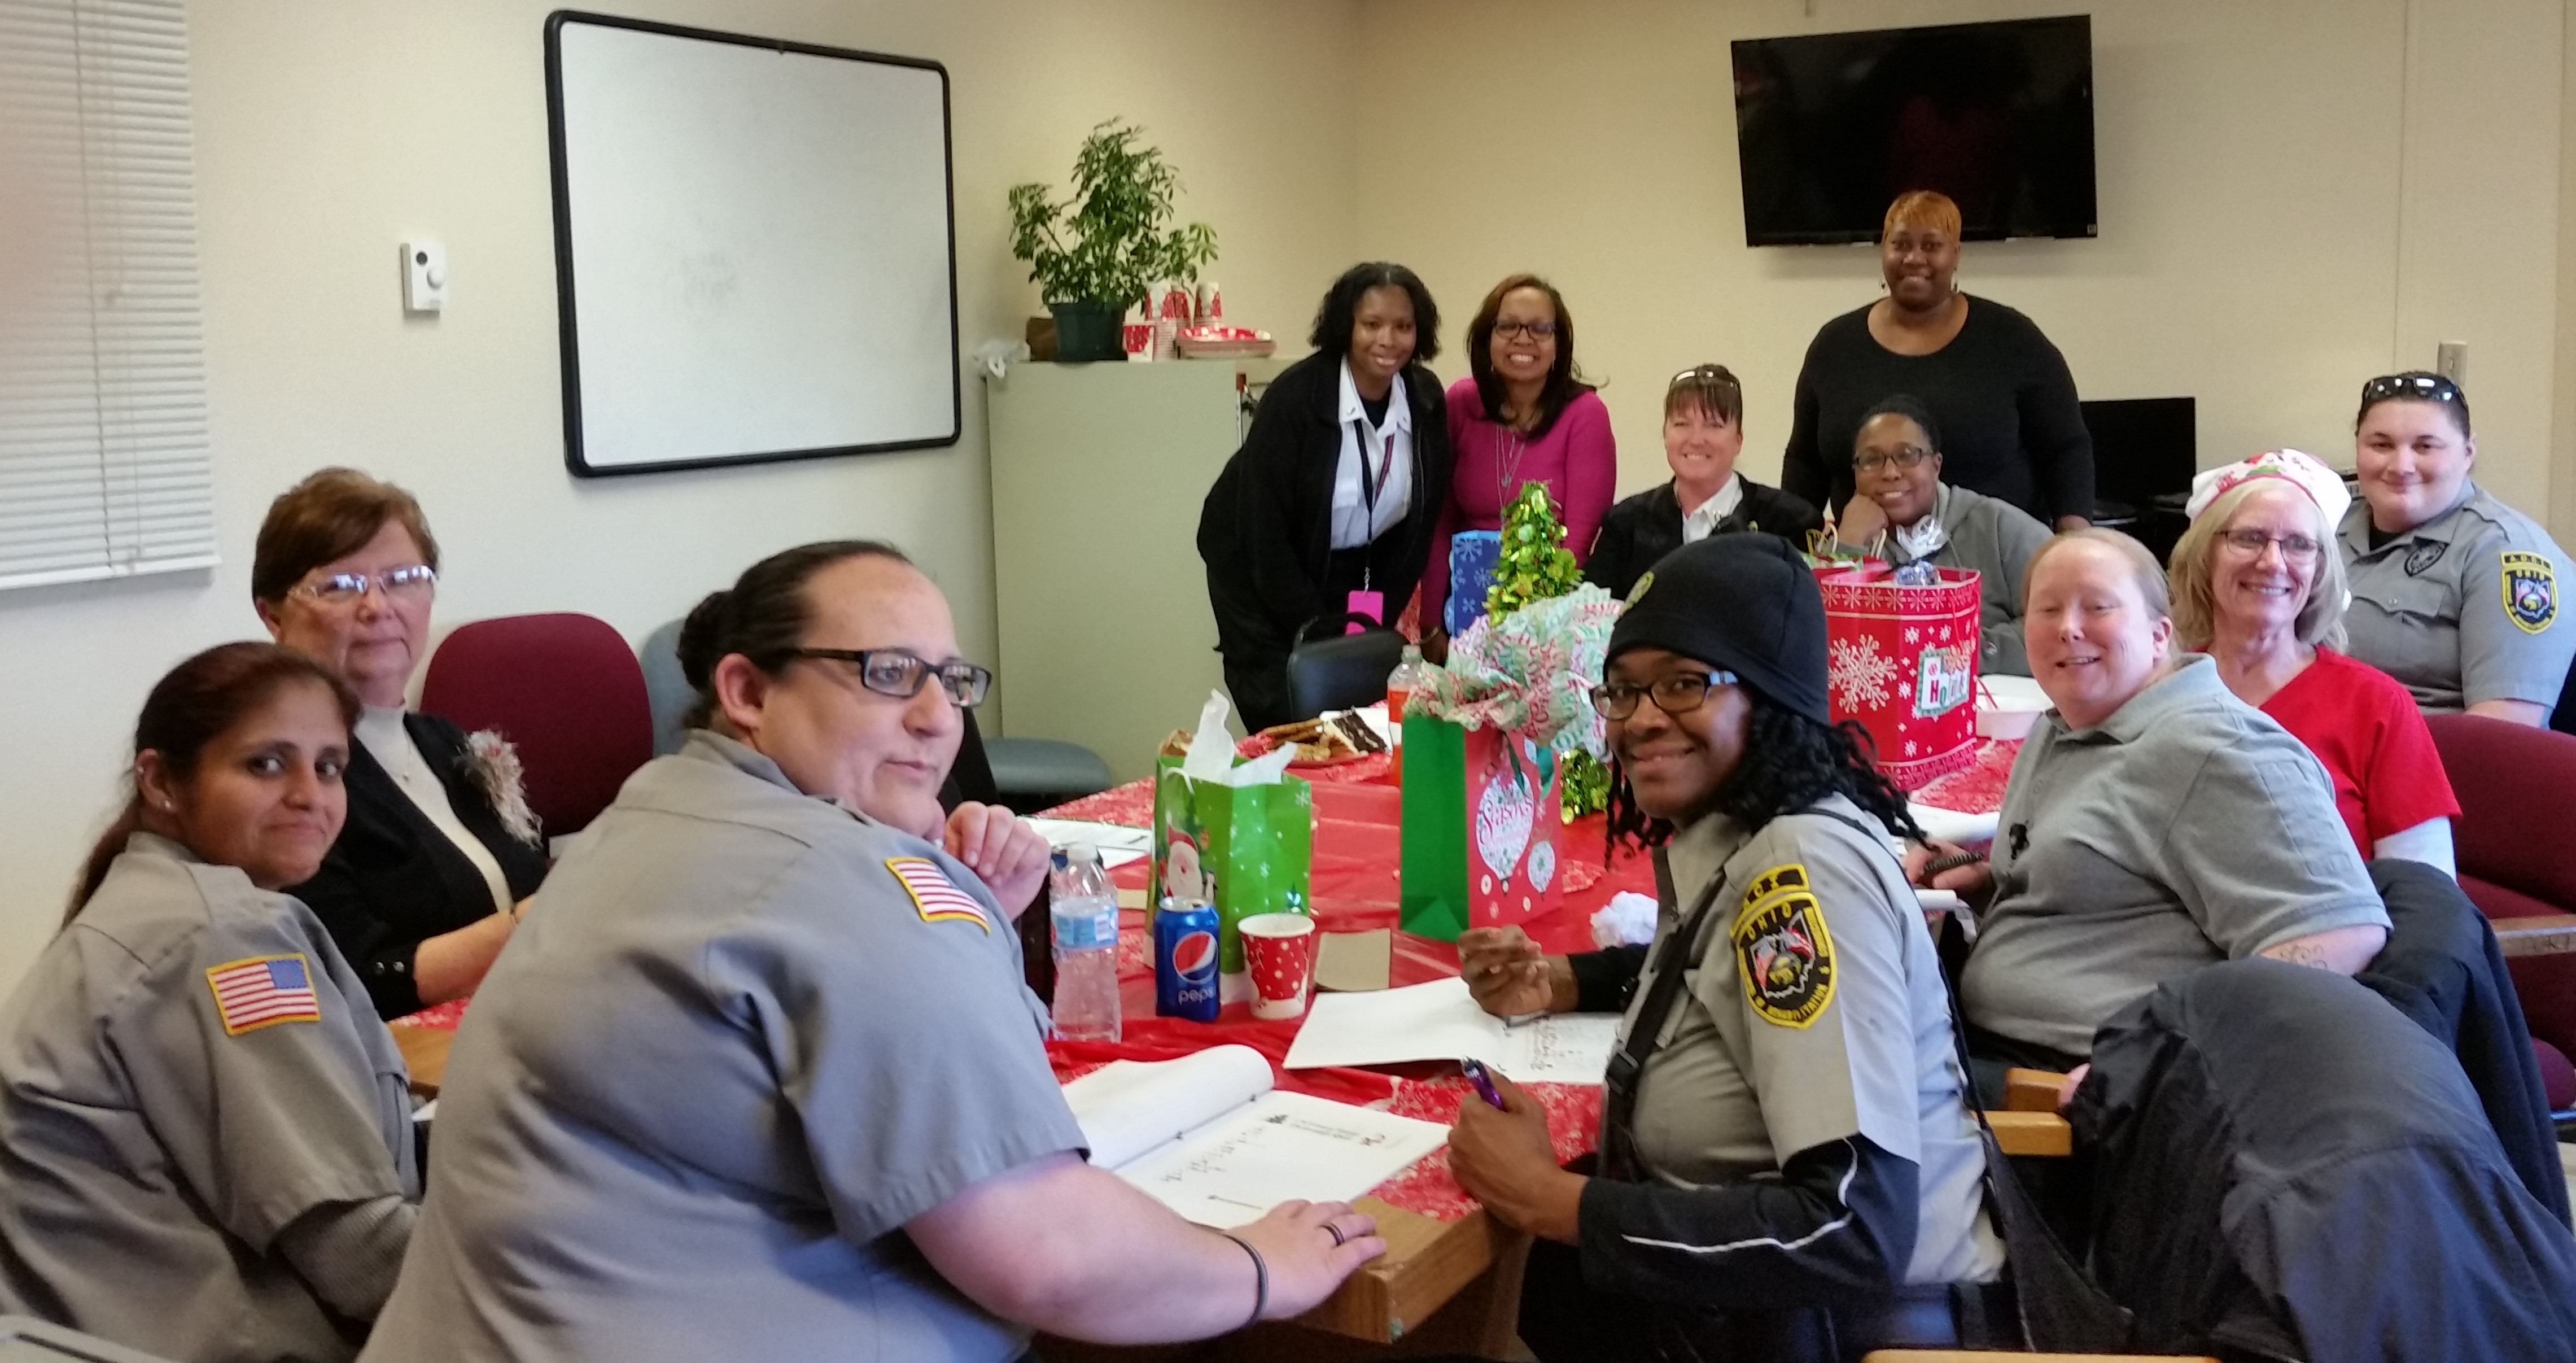 AOCI Women in Corrections Celebrates the Holiday Season